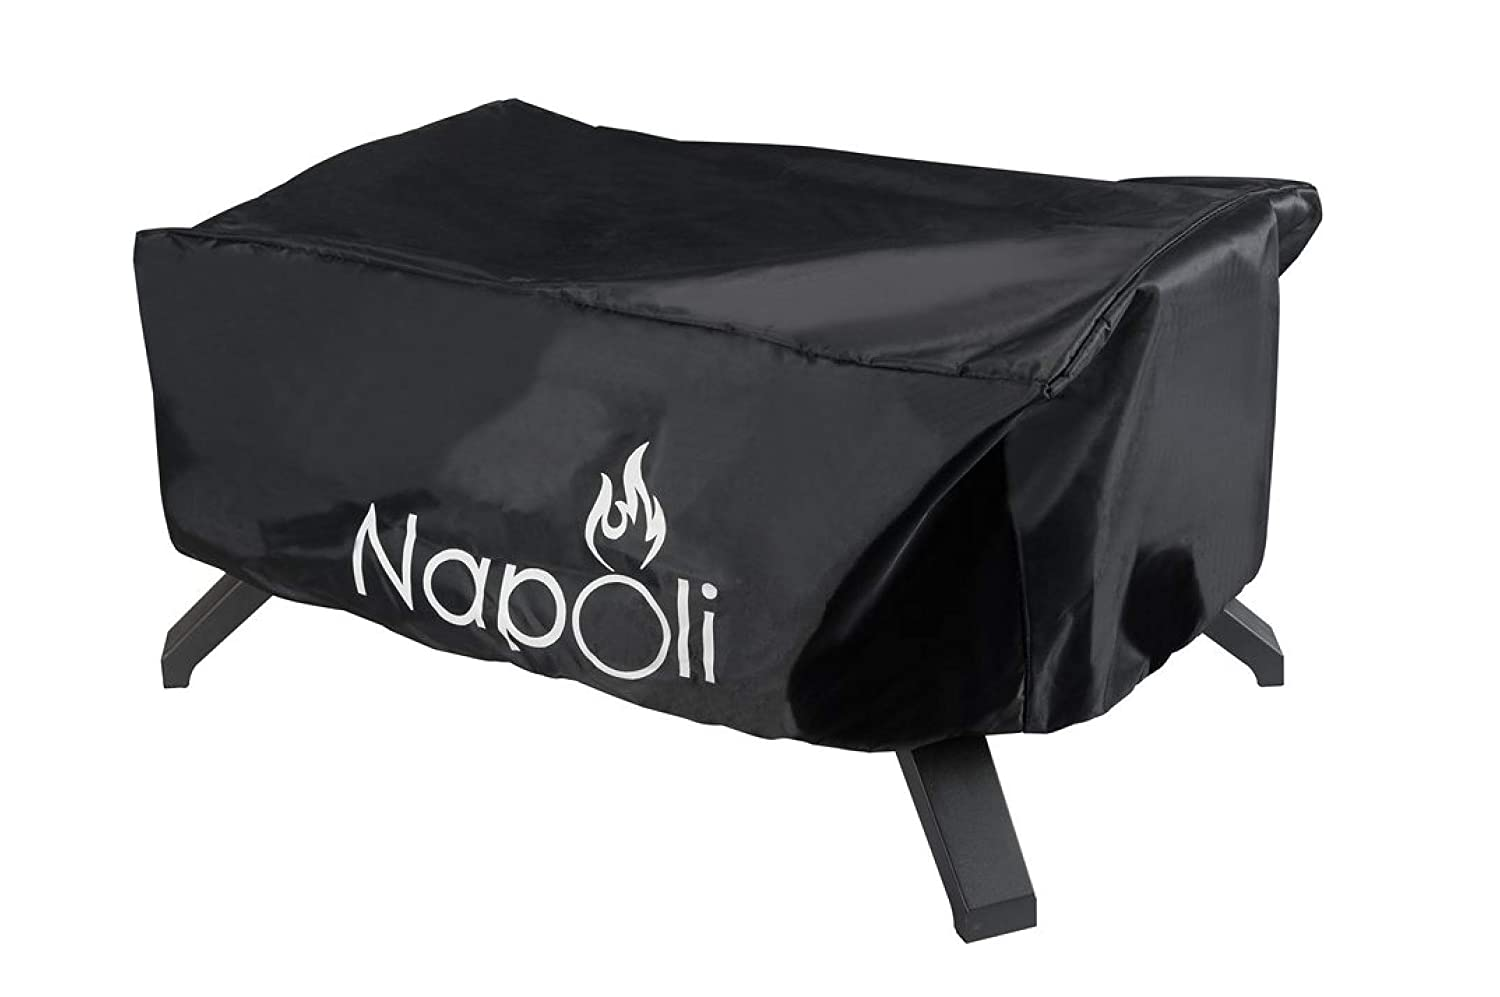 Napoli Weather Proof Cover